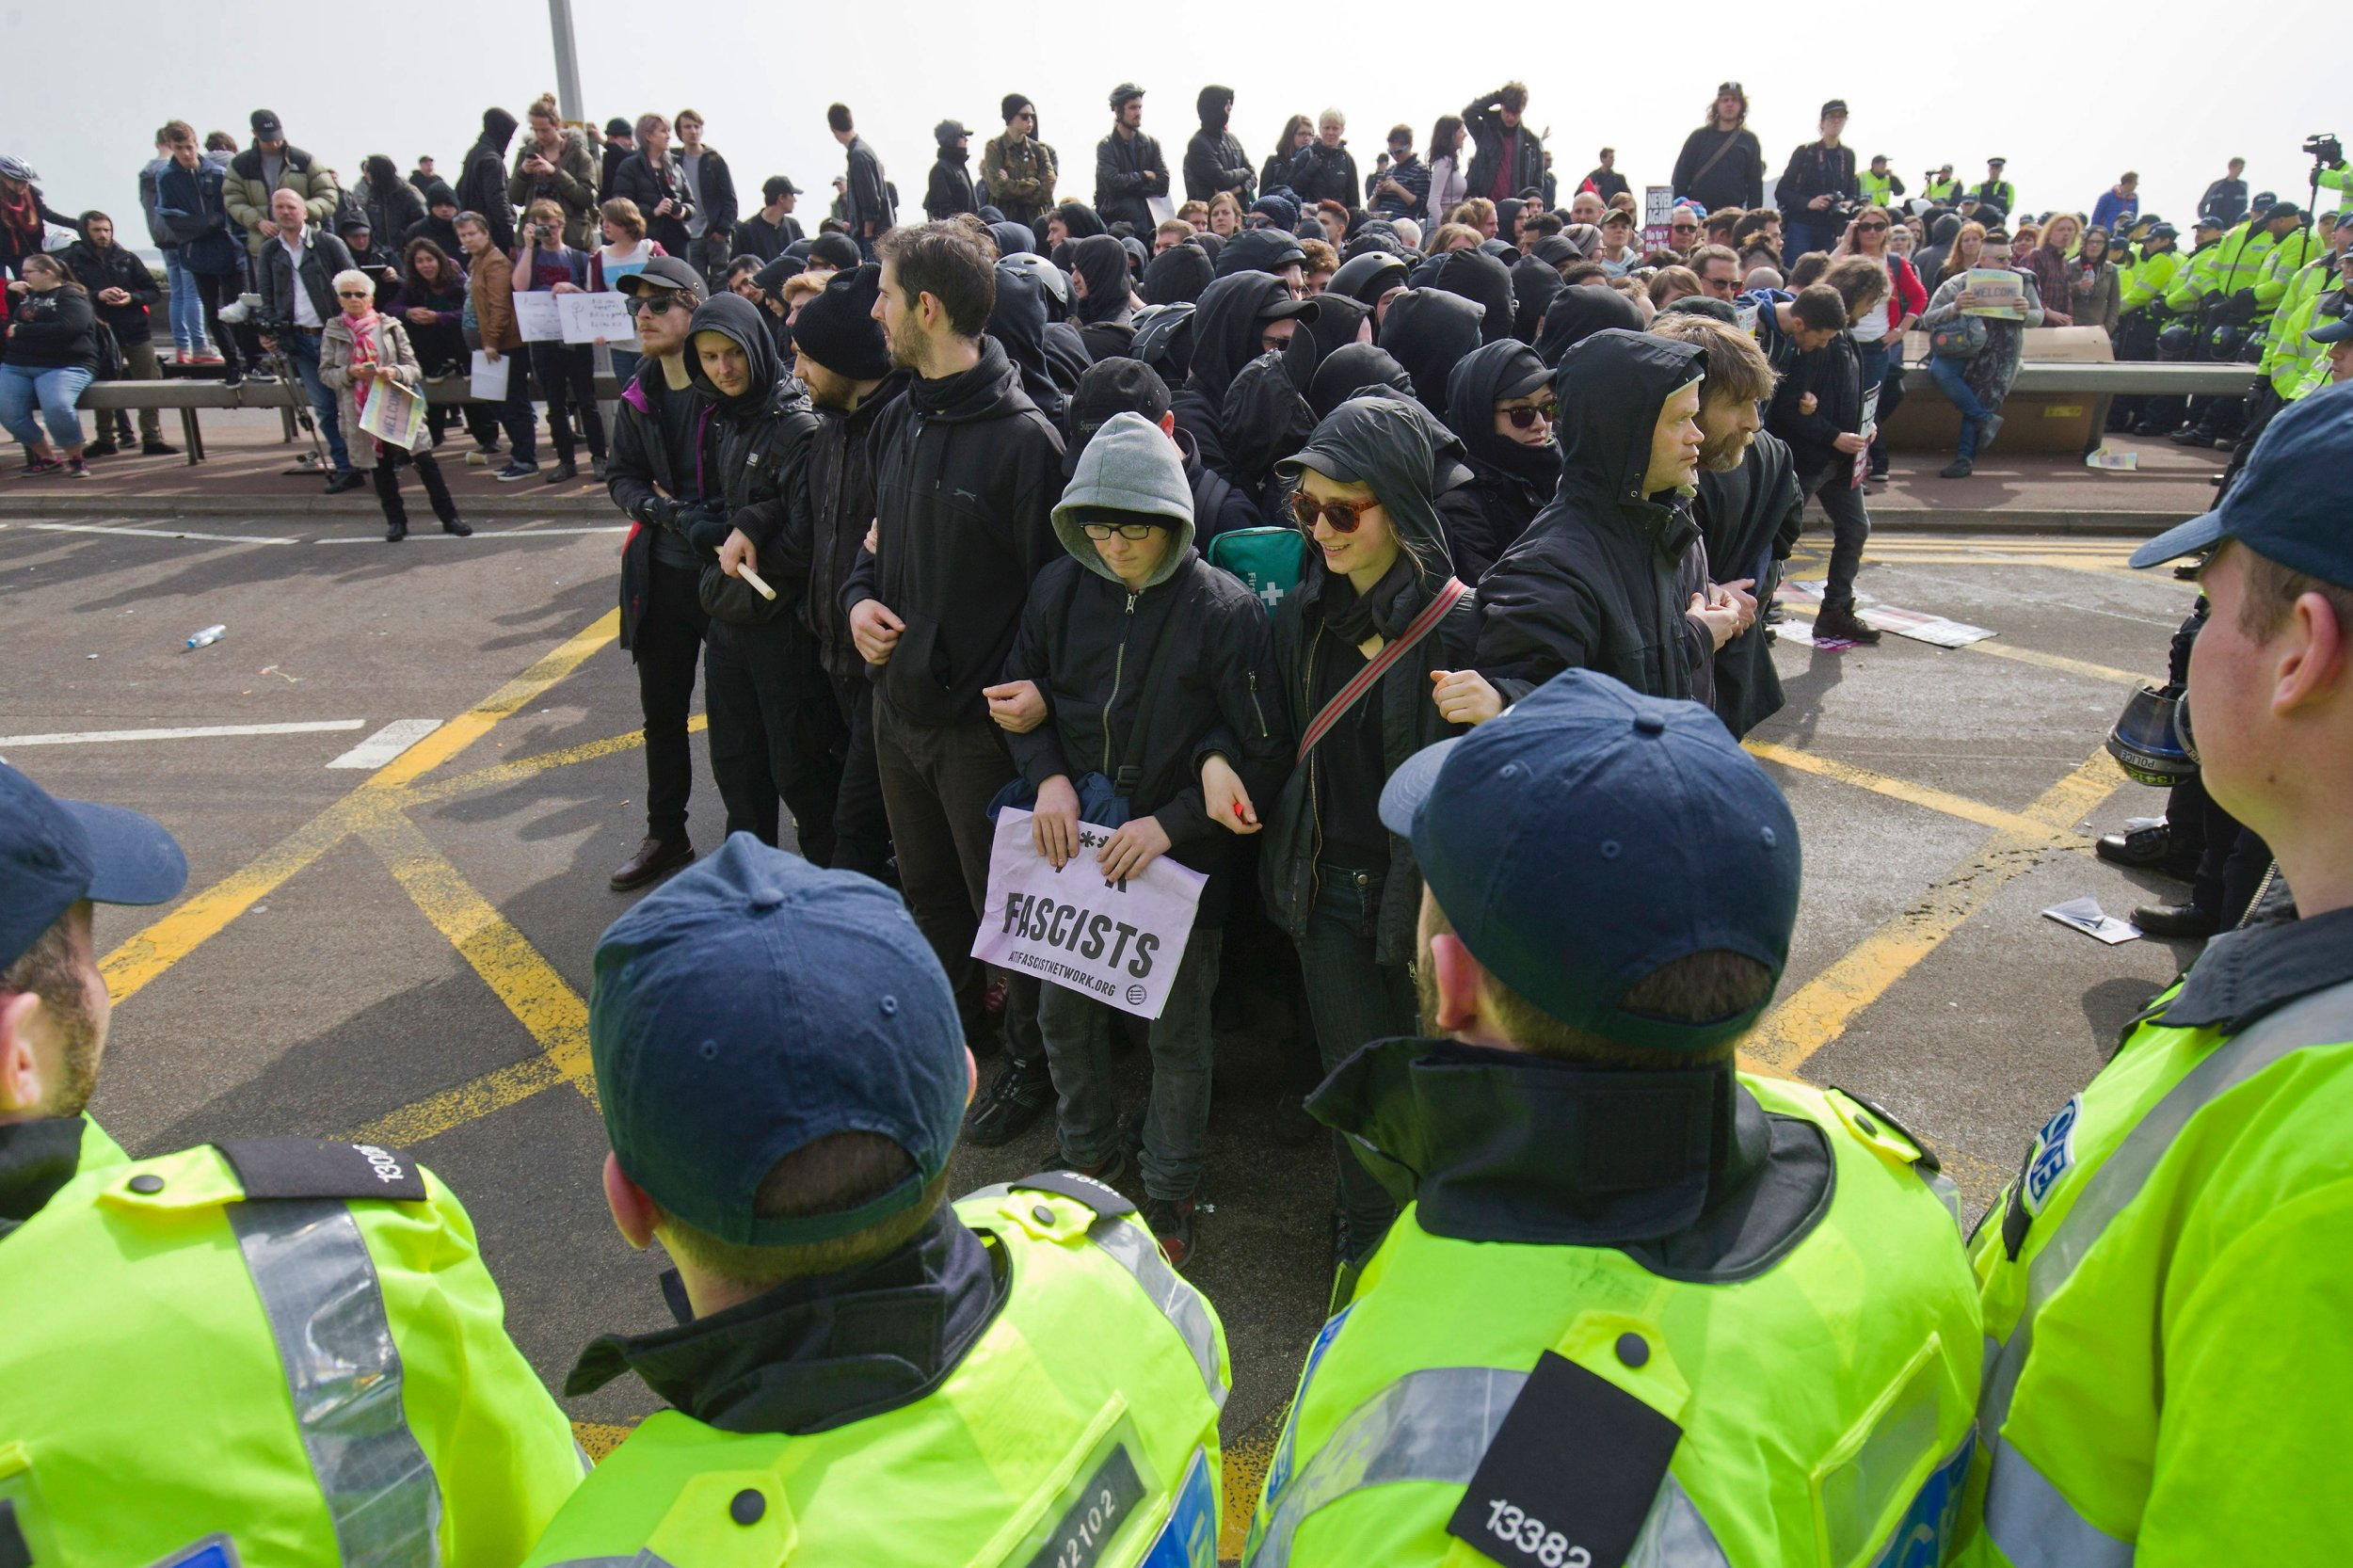 Police surround anti-racism demonstrators as they block the route of a planned far right march through Dover, southern England, on April 2, 2016. / AFP PHOTO / JUSTIN TALLISJUSTIN TALLIS/AFP/Getty Images